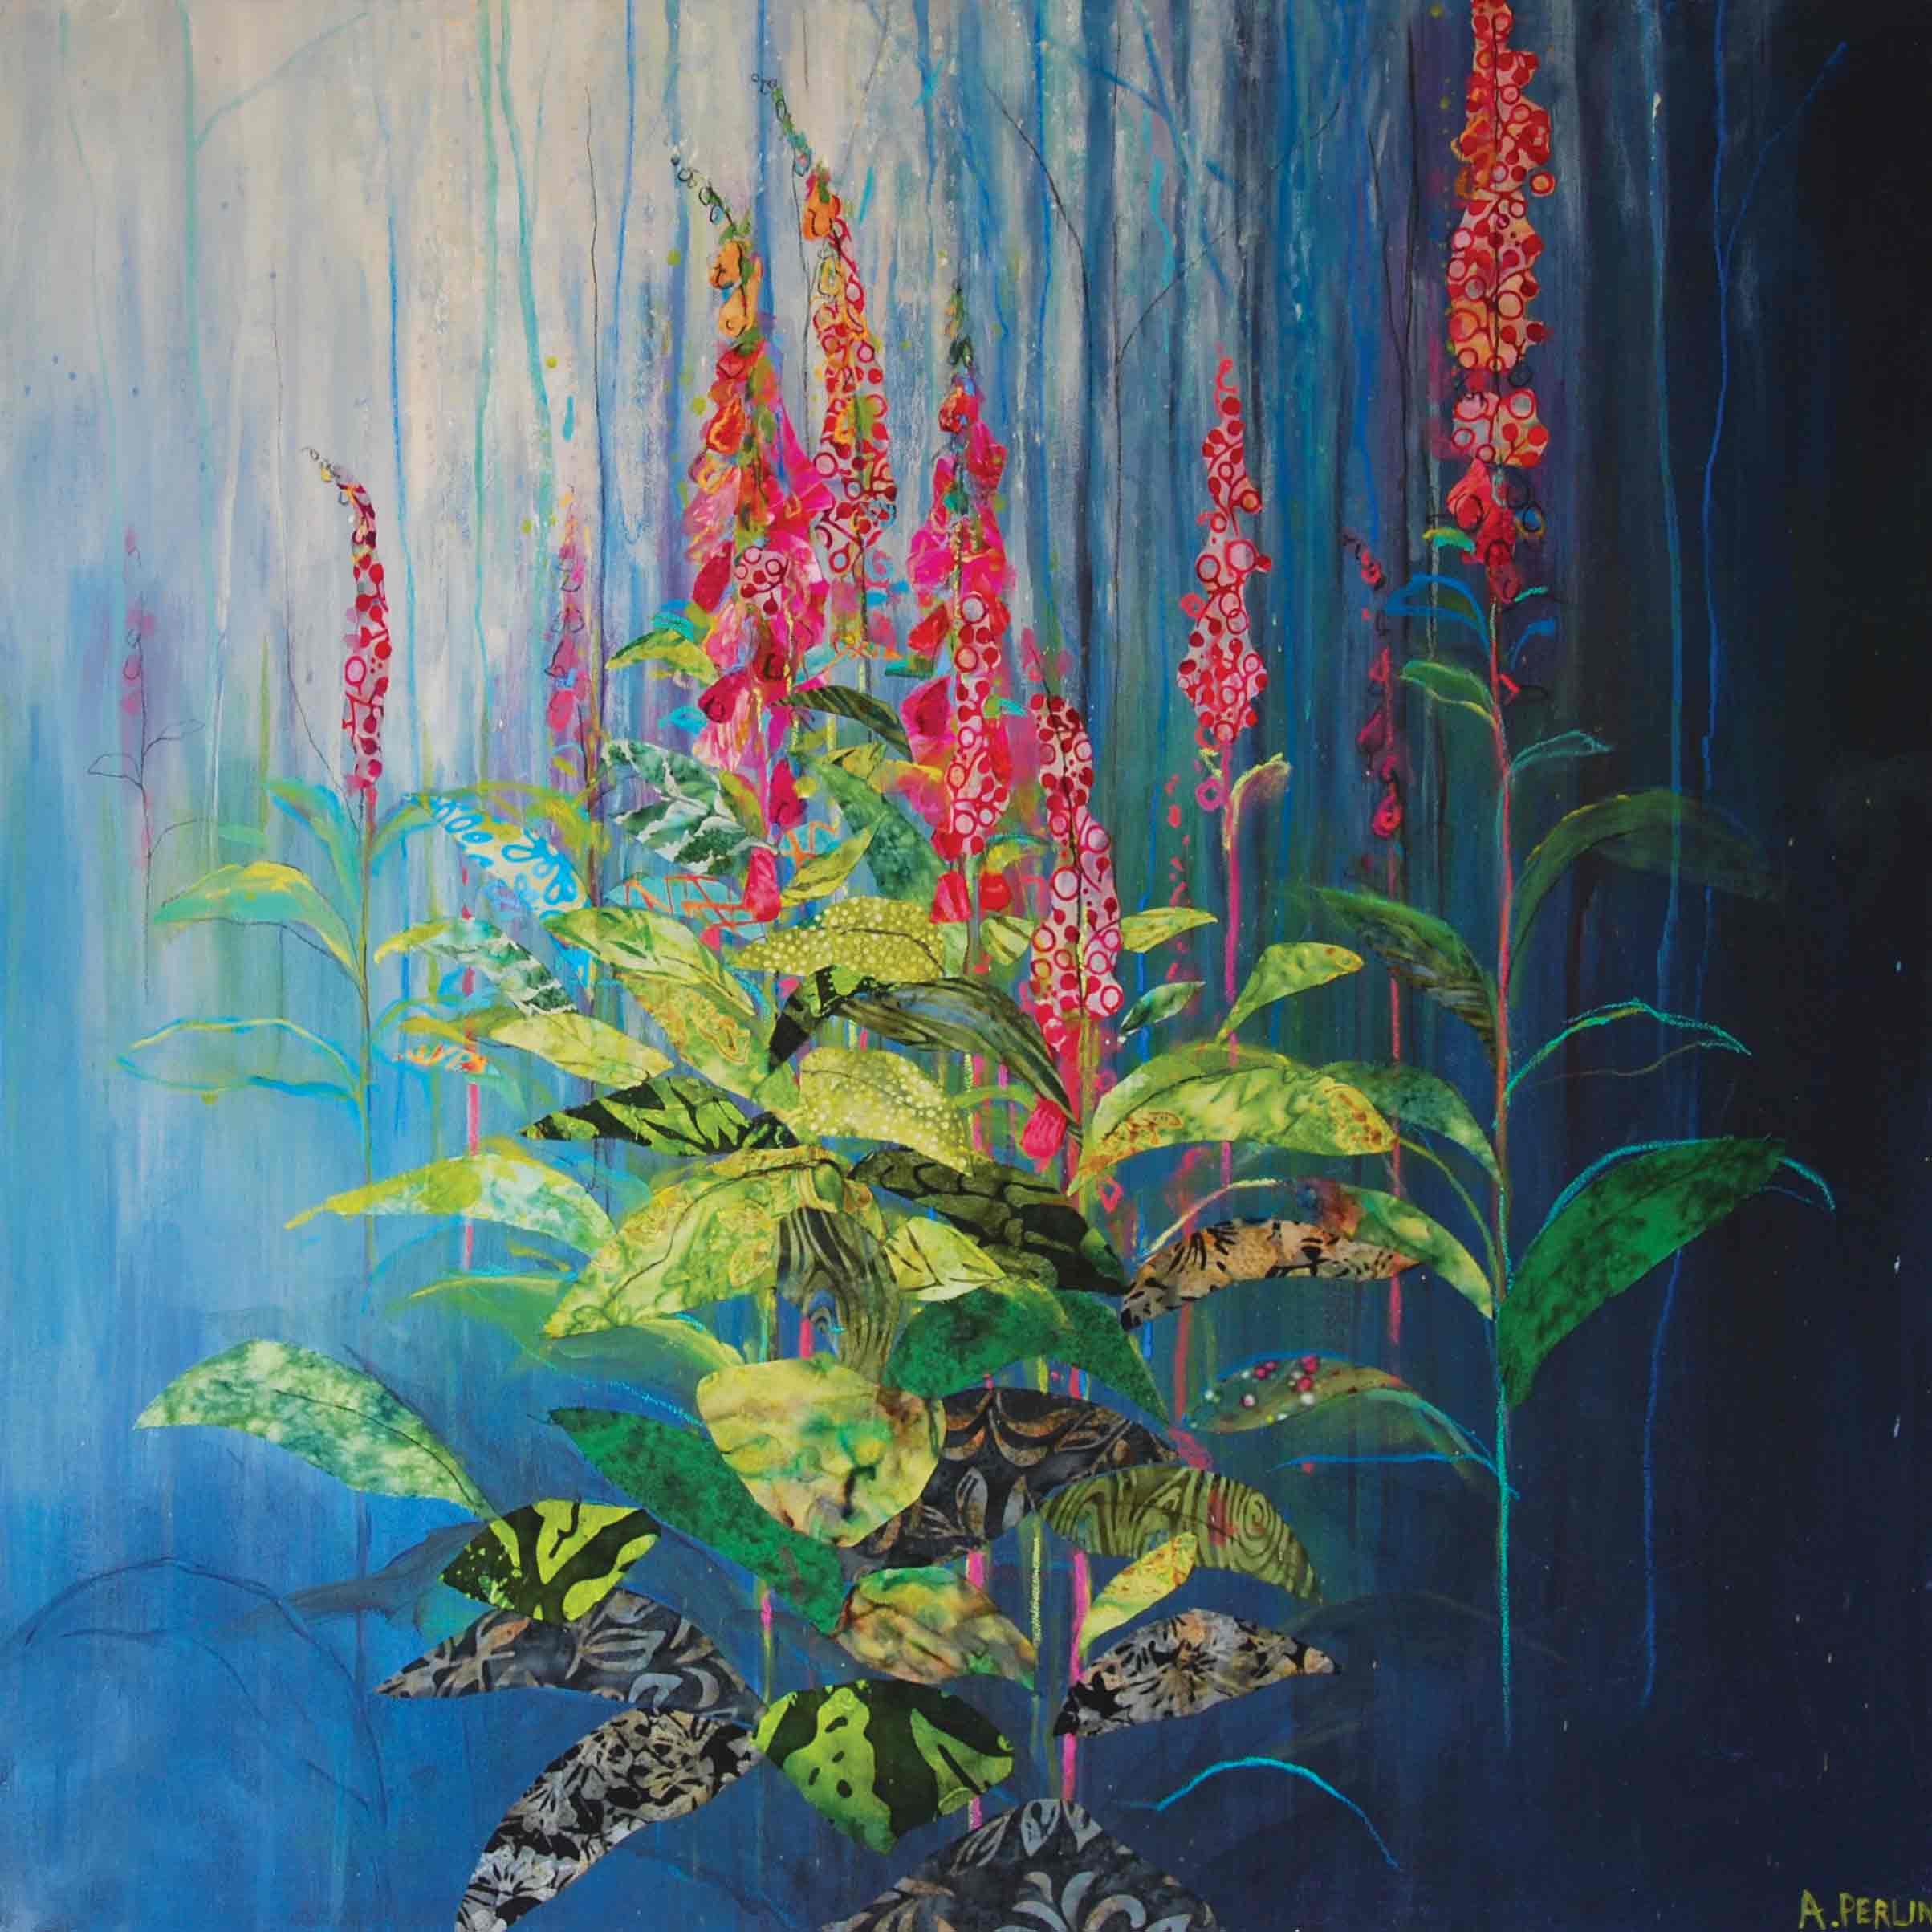 Art Greeting Card by Anna Perlin, Foxgloves, Mixed media, Foxgloves in woods